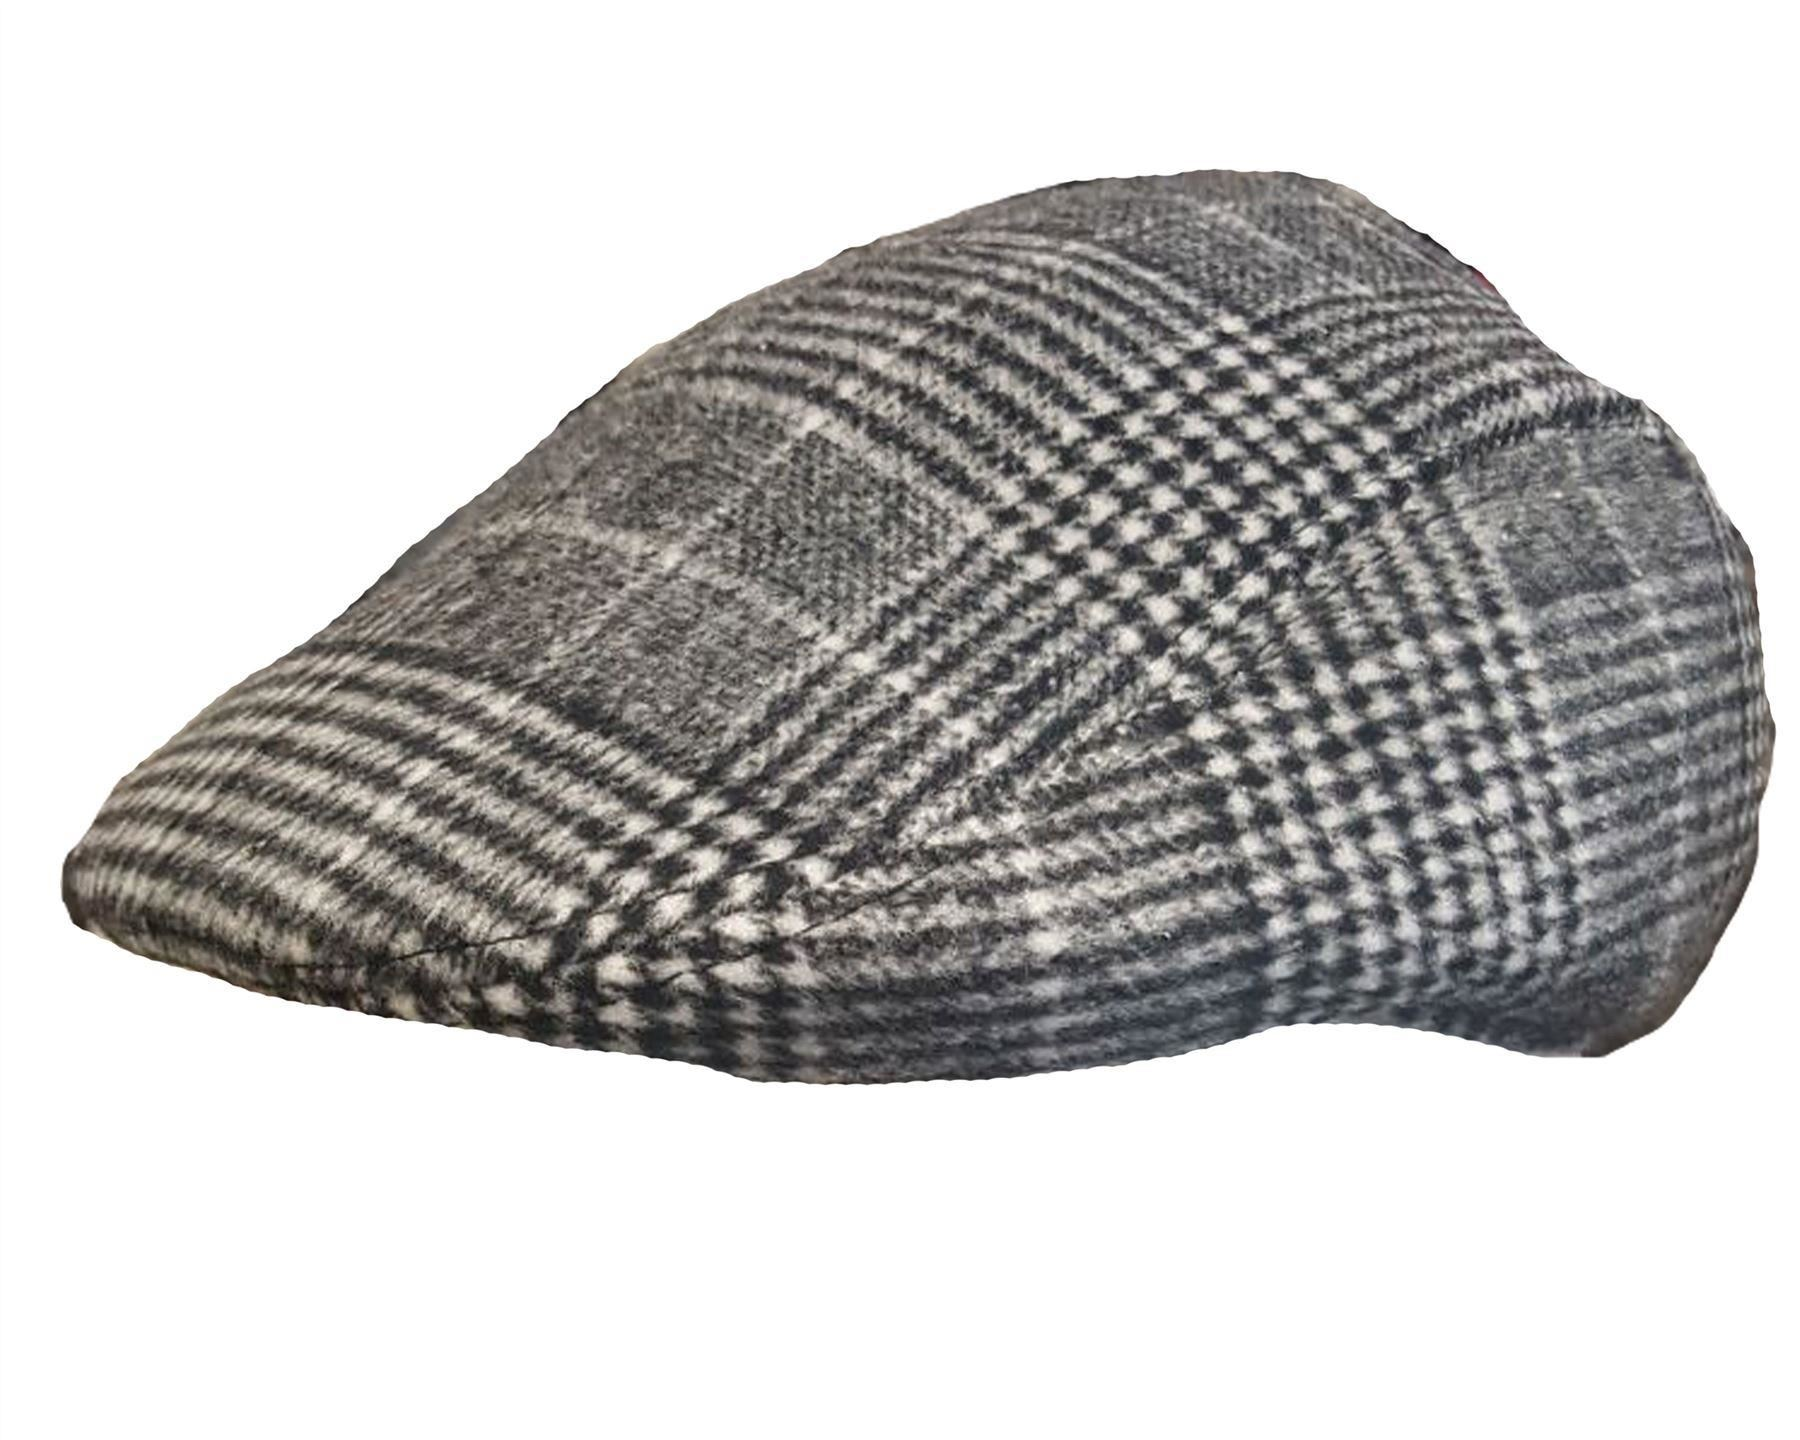 Find great deals on eBay for Flat Peak Cap in Men's Hats. Shop with confidence.